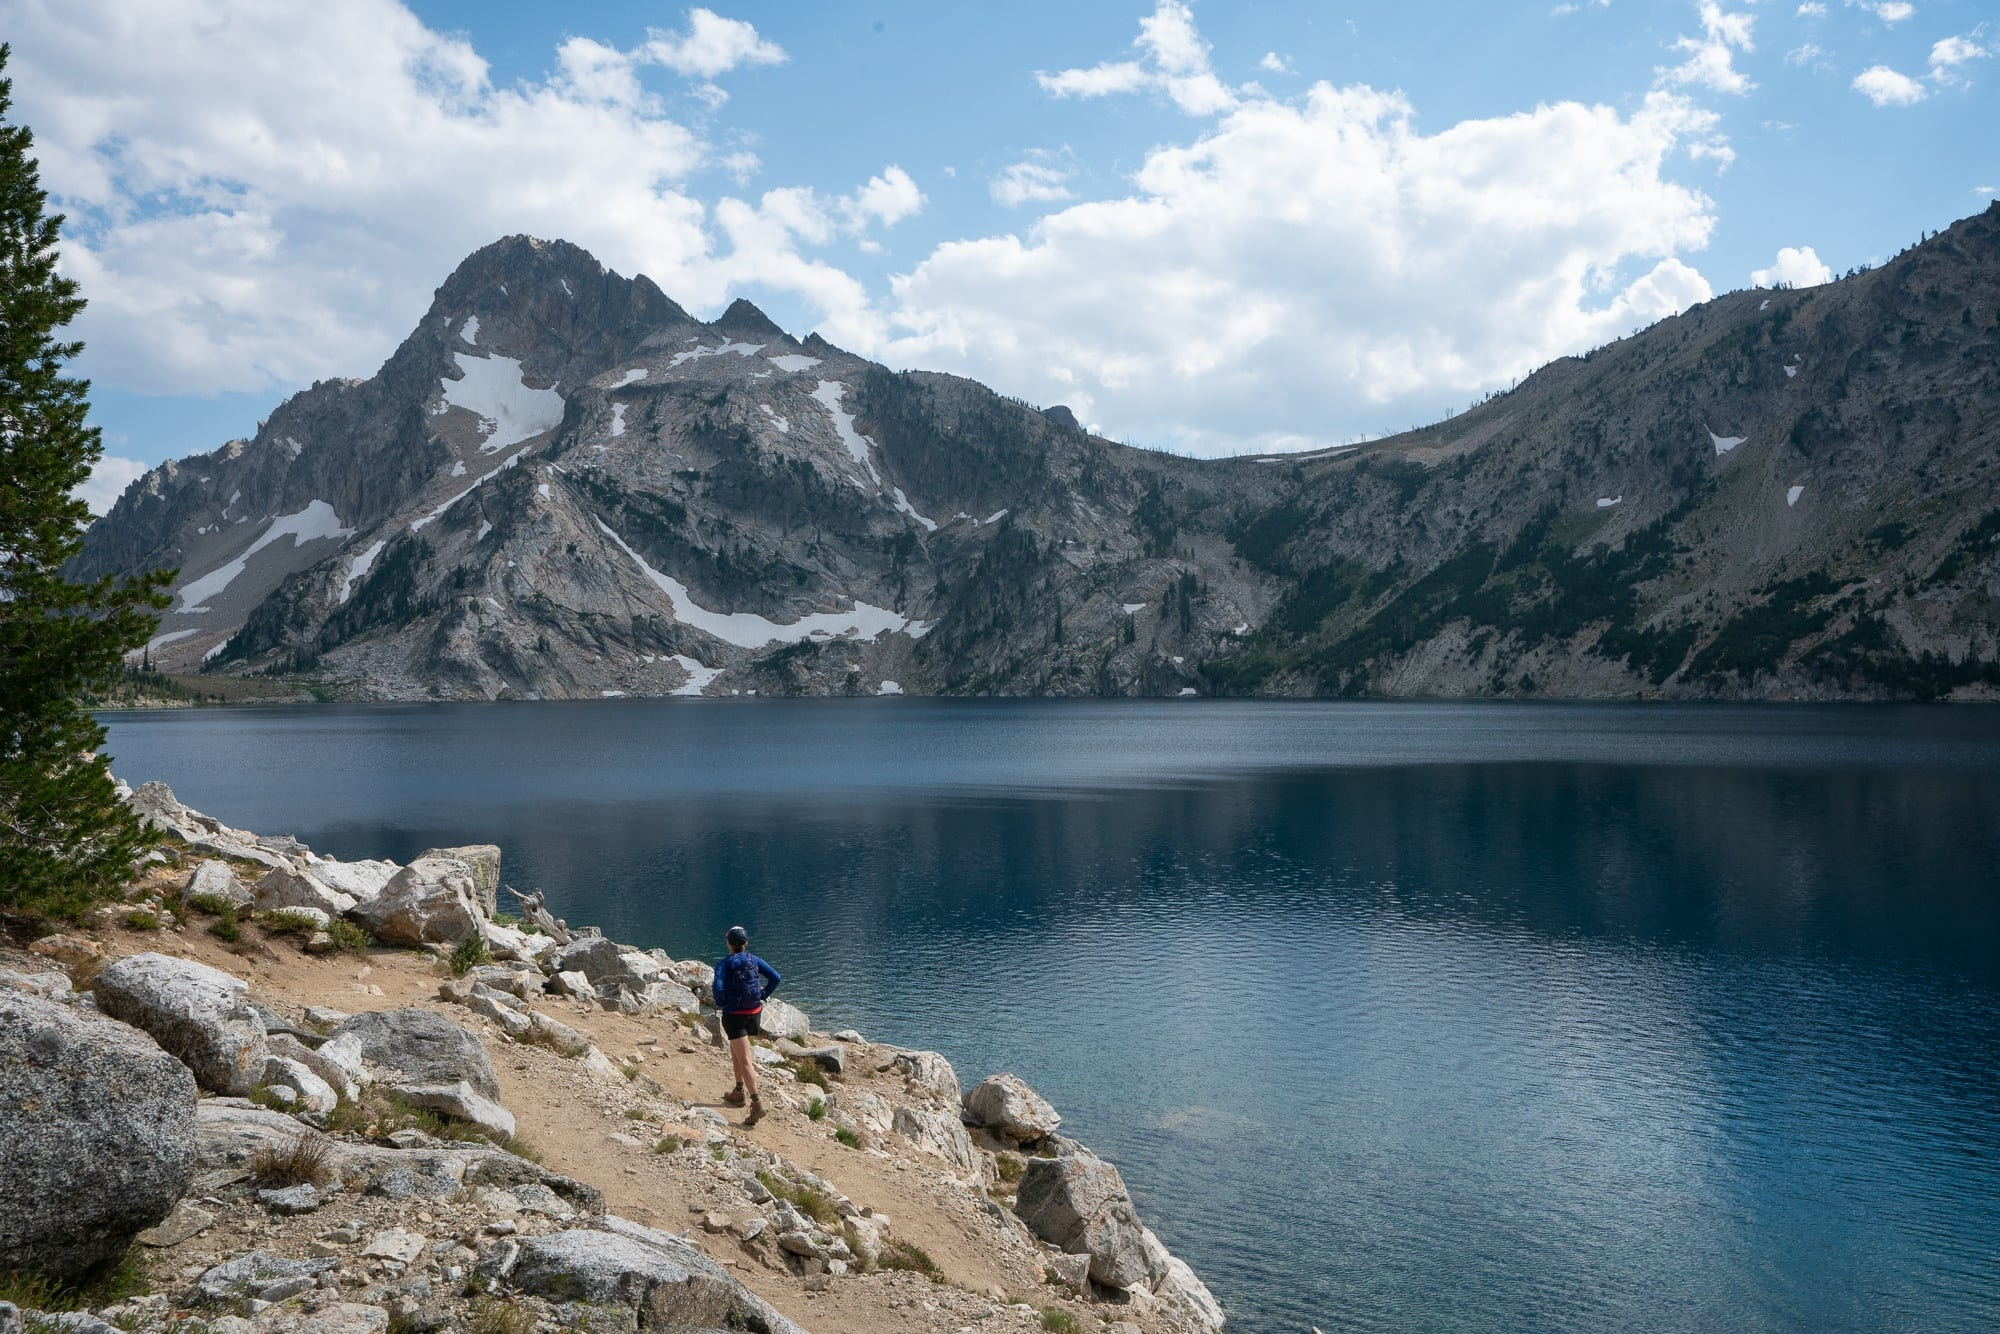 Trail Guide: Hiking to Sawtooth Lake in Idaho